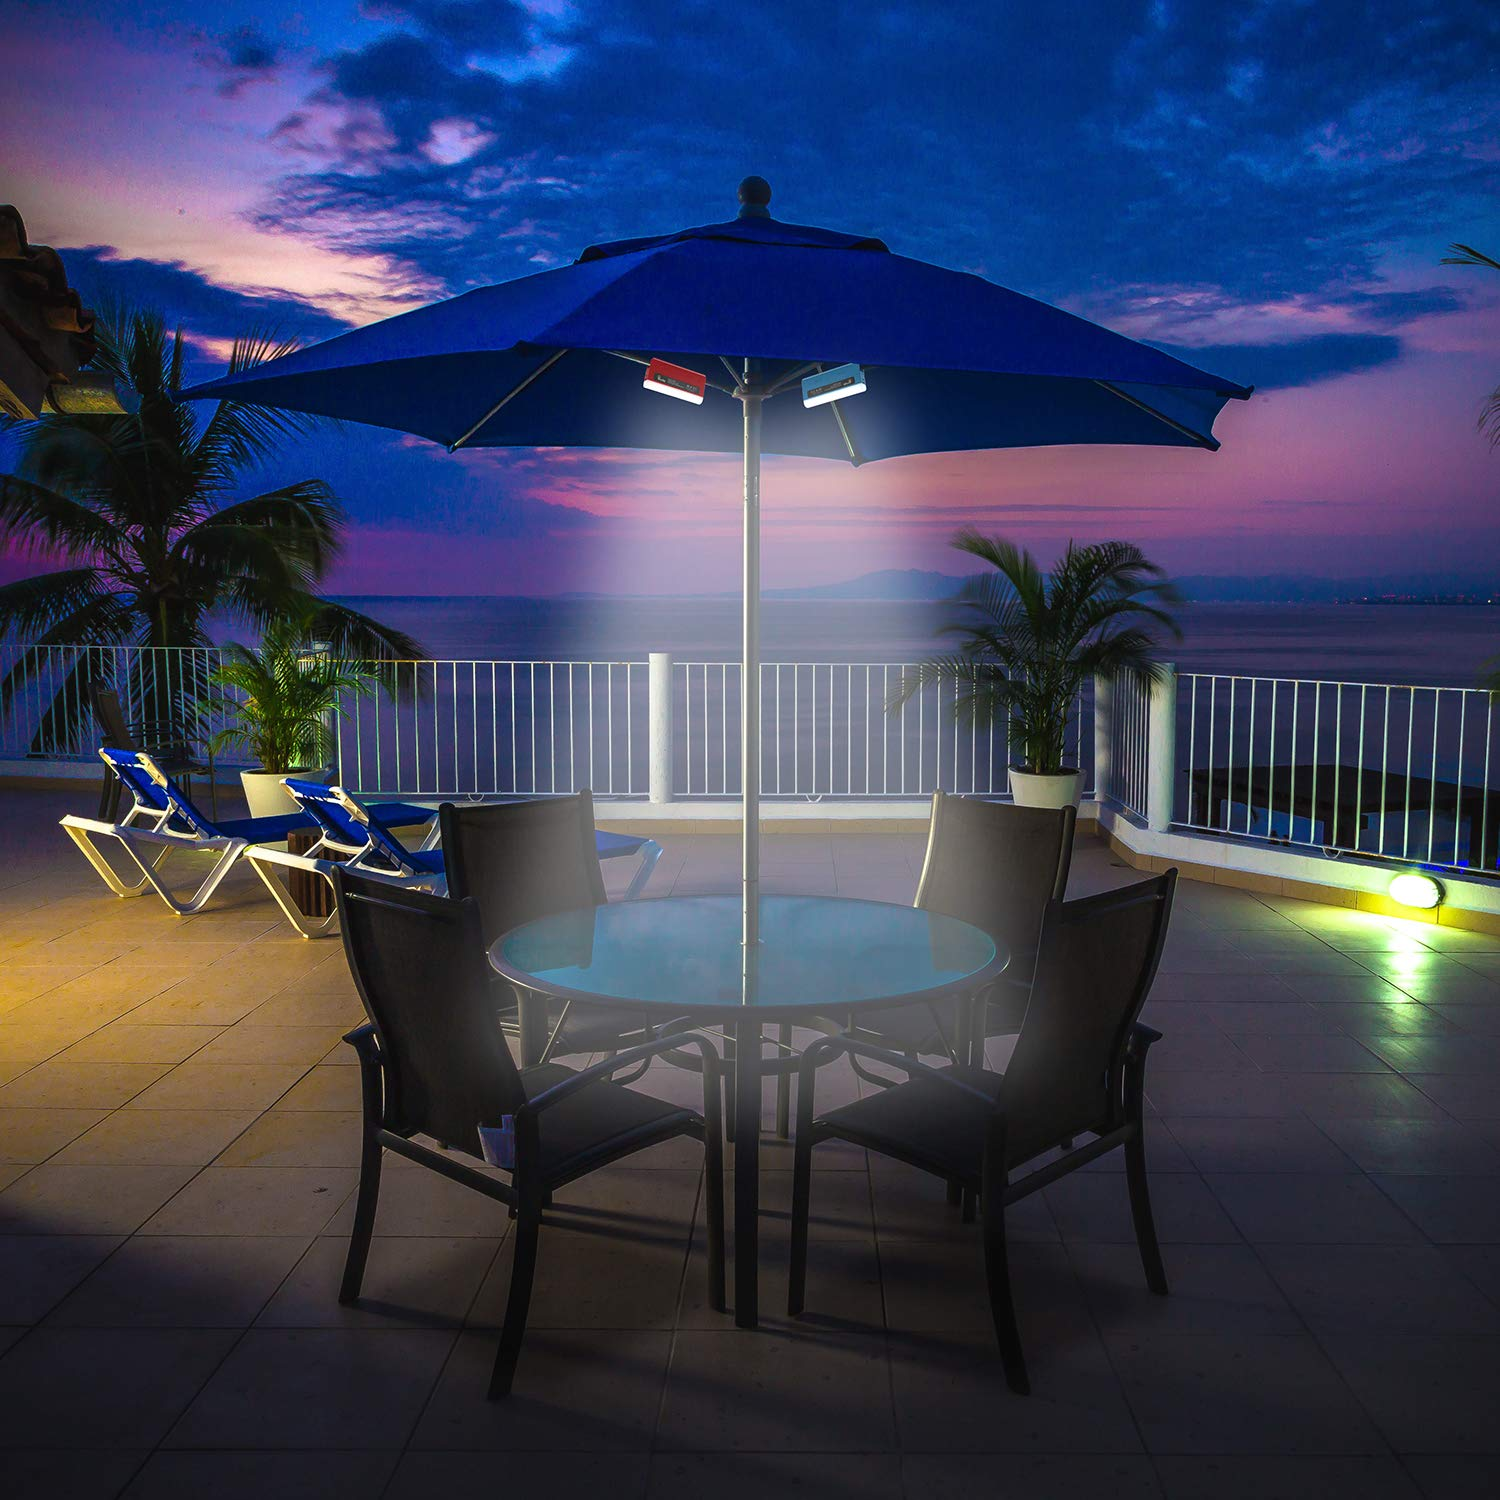 Tourke 9-10 Ft Patio Umbrella Light Outdoor Umbrella Pole Light, Rechargeable LED for Outdoor Patio Desk, Camping, Crank Mounted, Battery Operated (Blue, 2 pc)